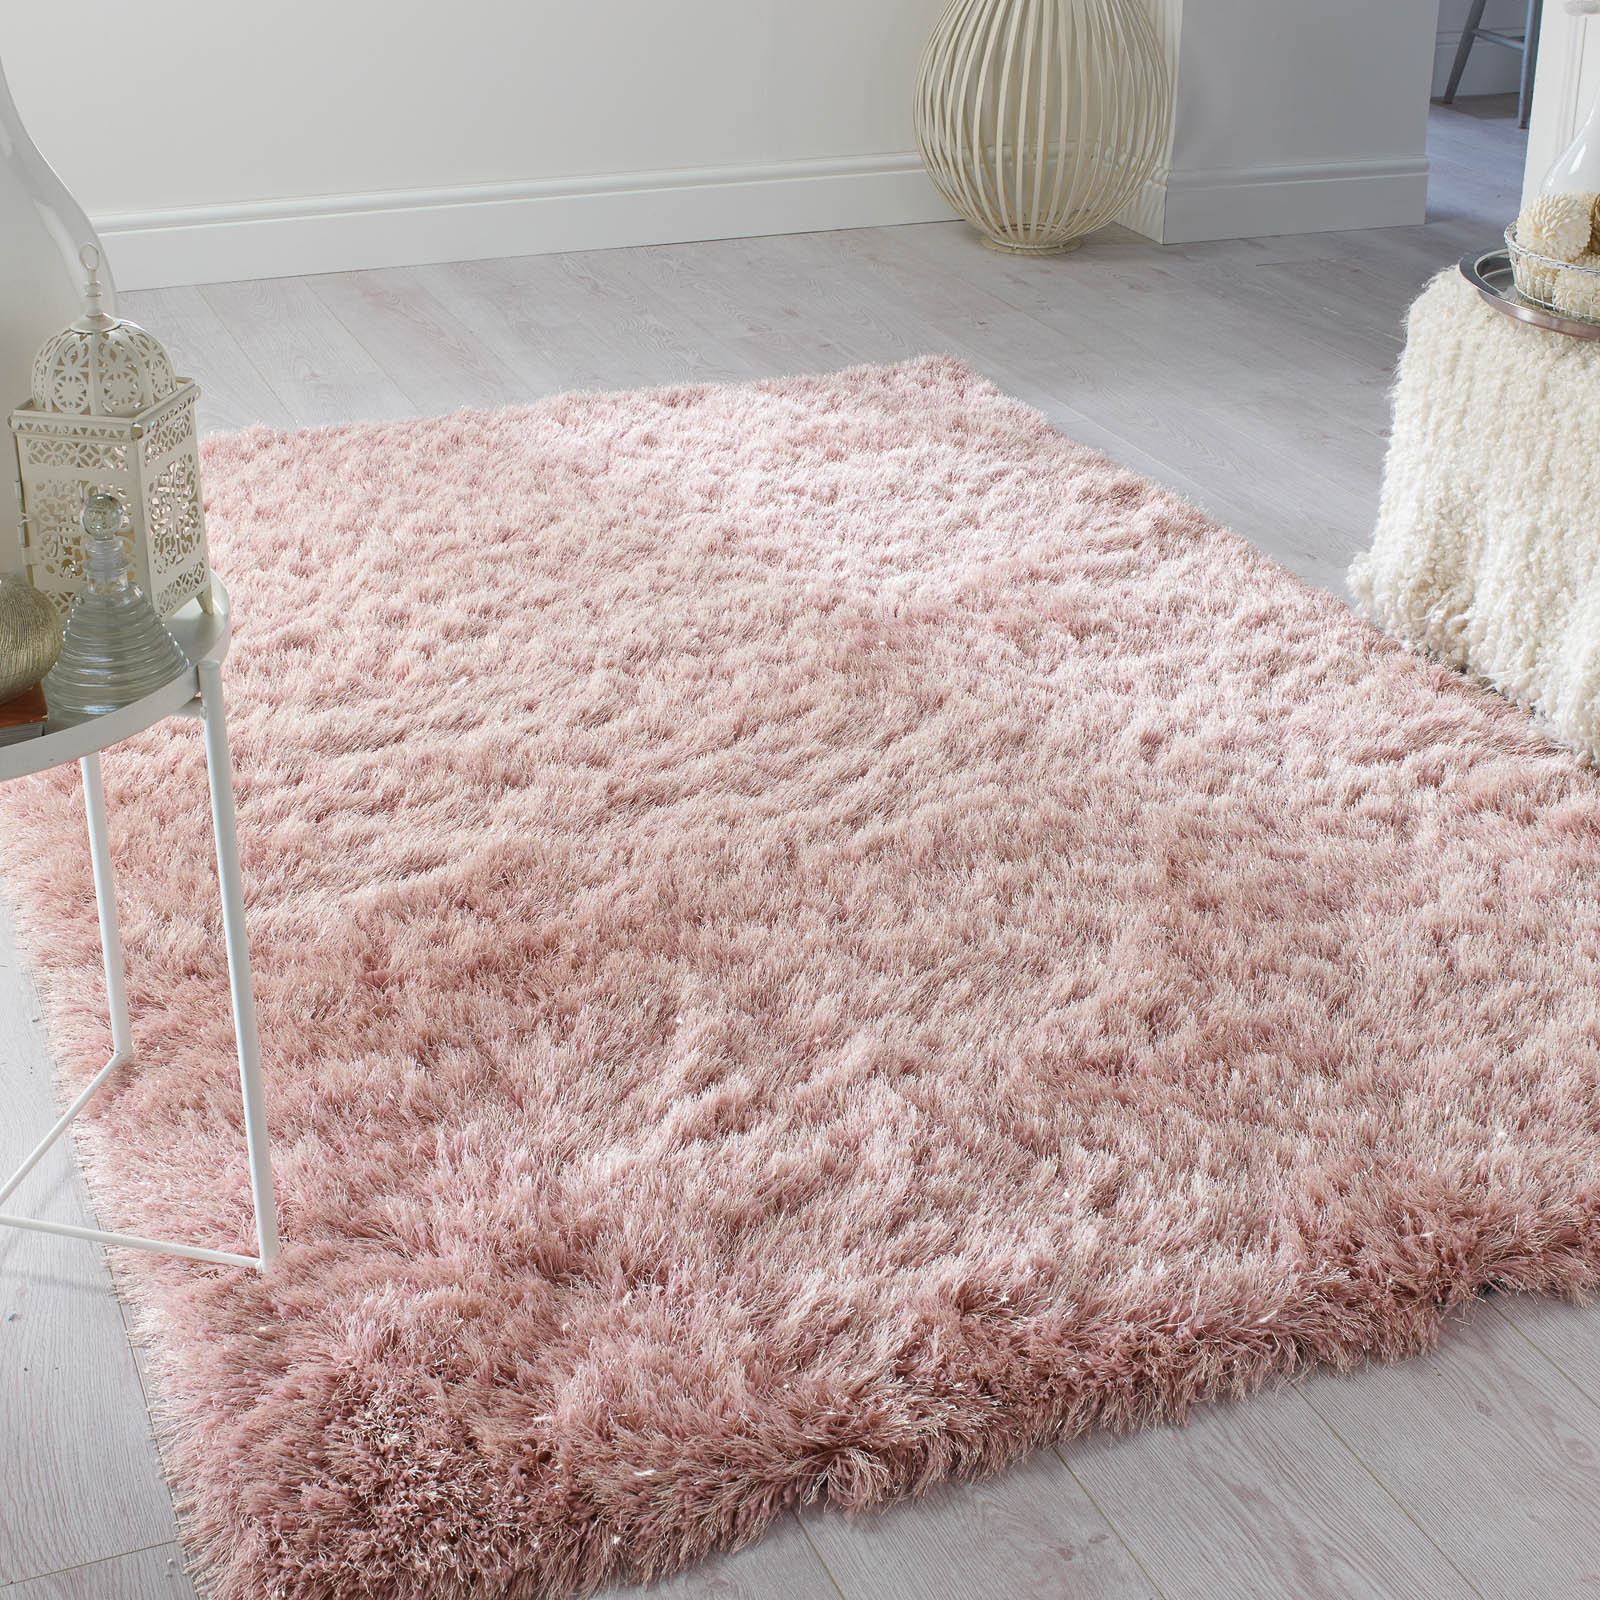 Dazzle Sparkling Shaggy Rugs Free Uk Delivery The Rug